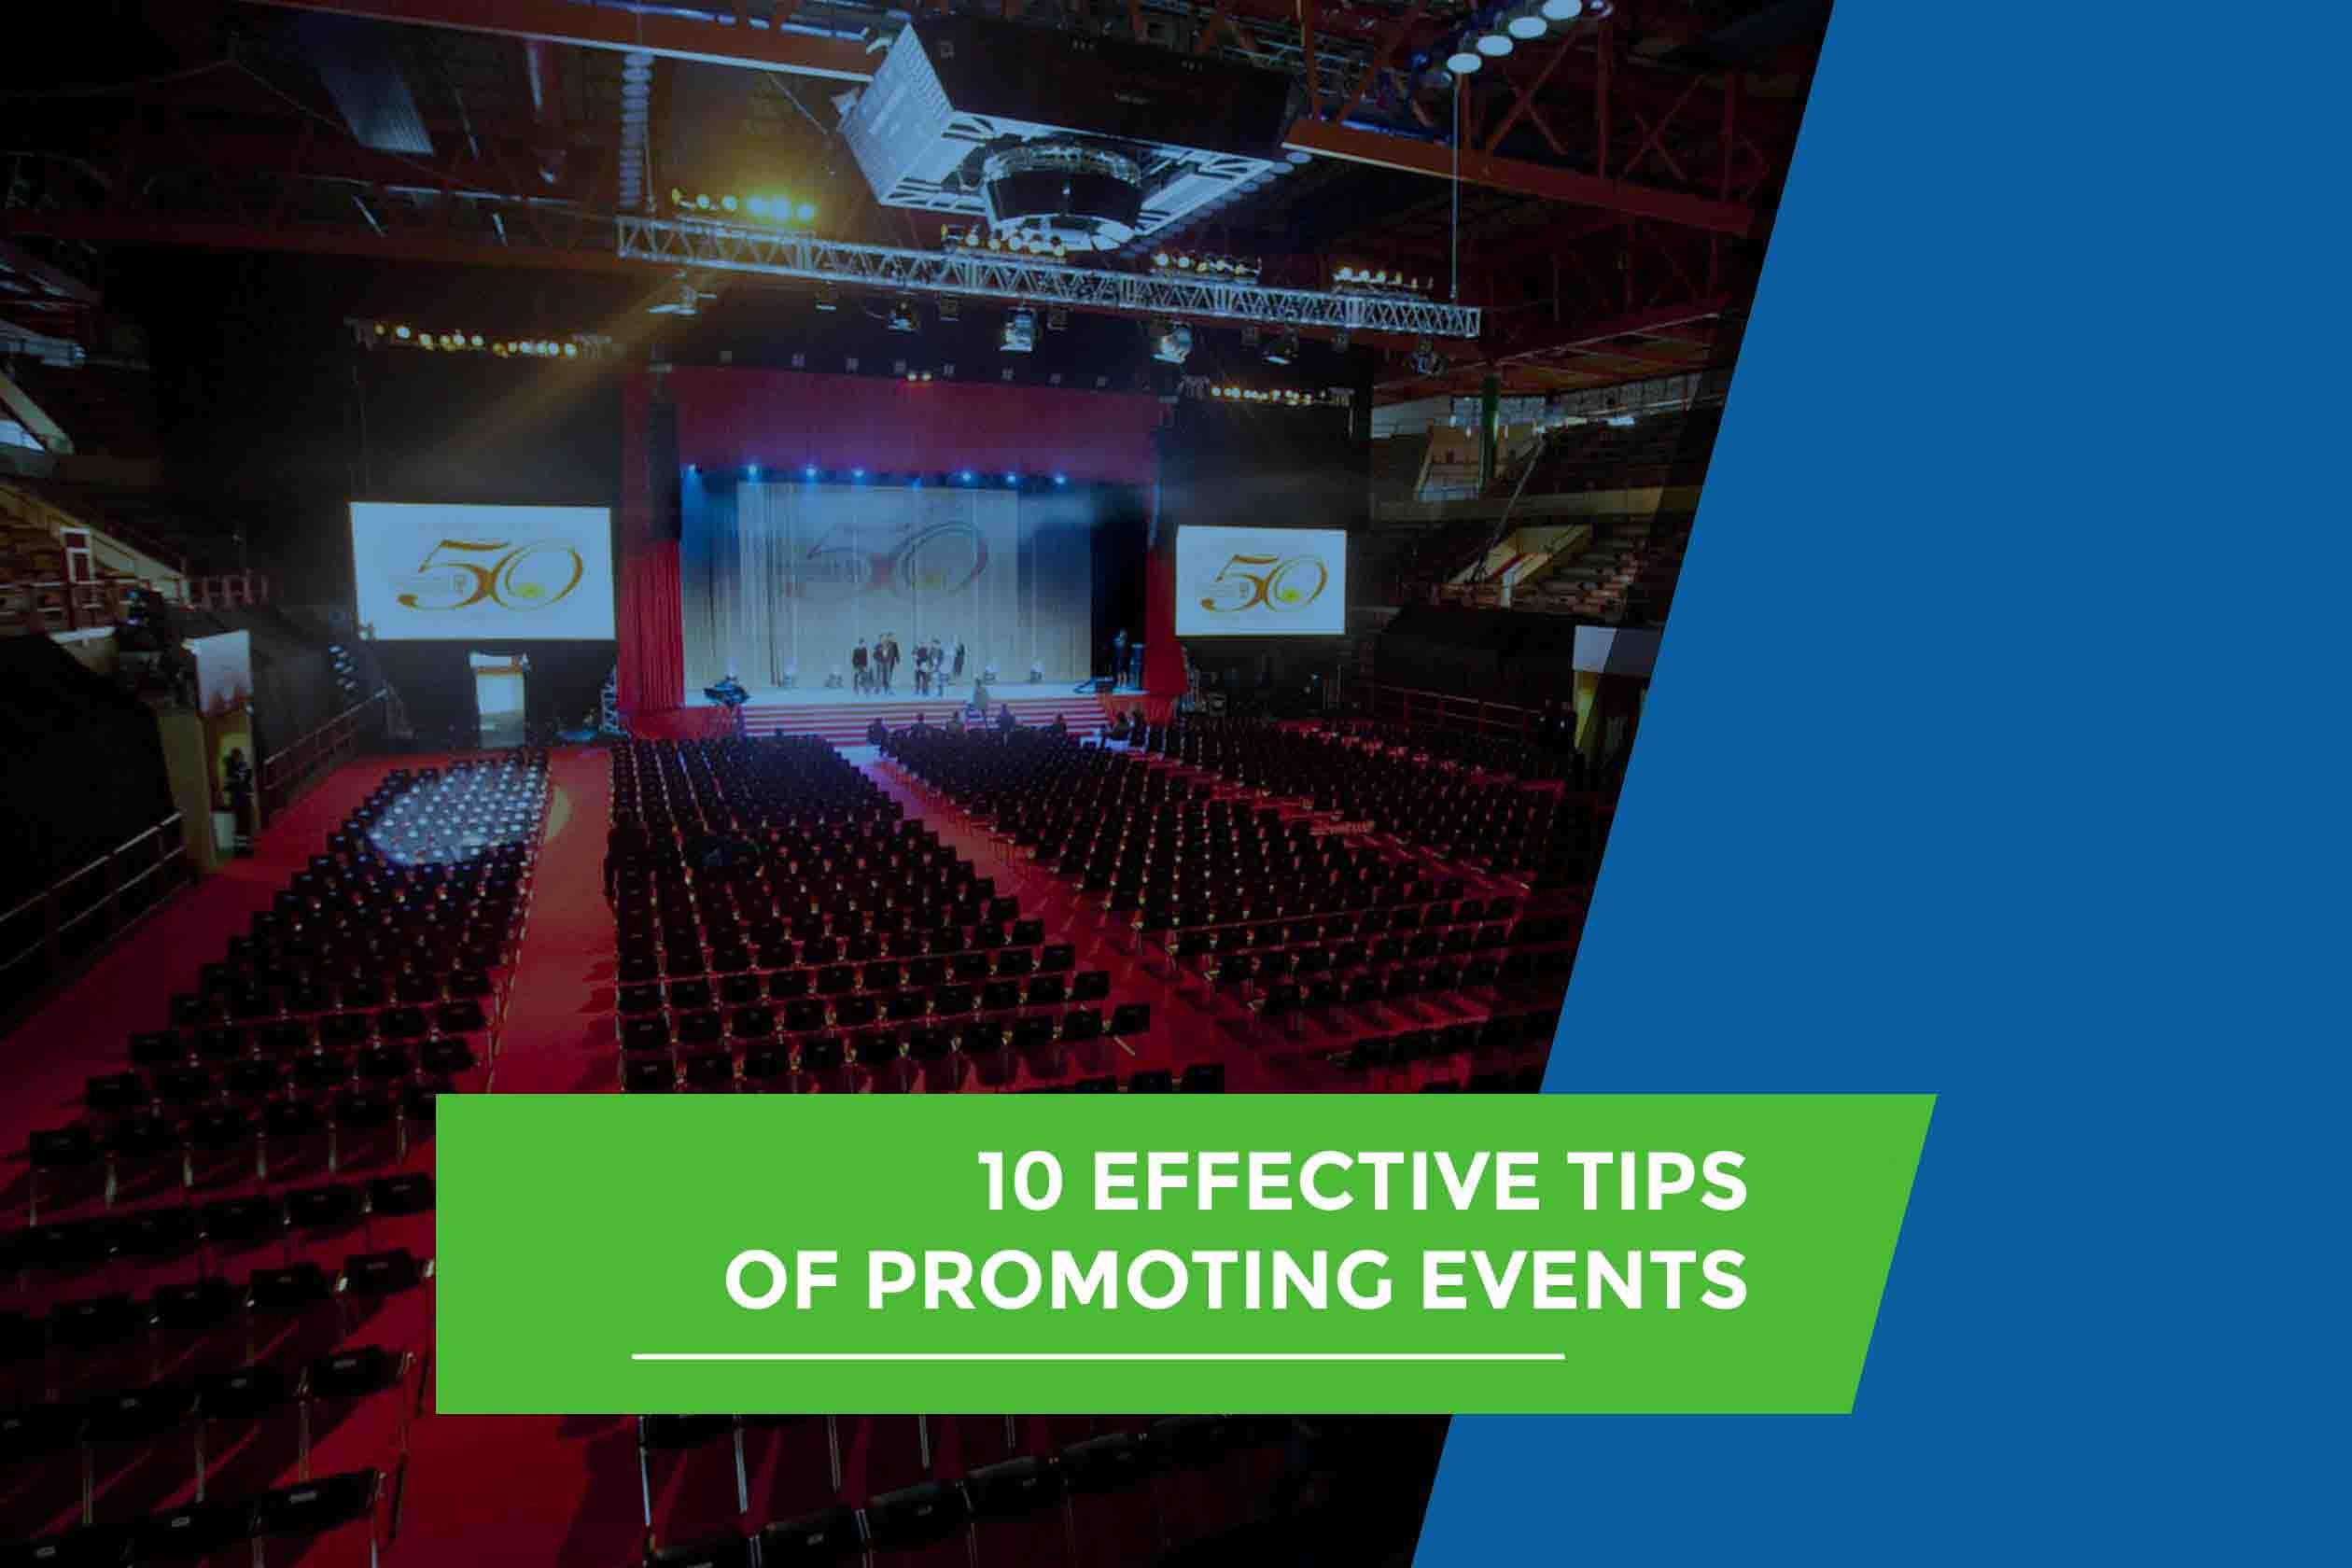 10 Effective Tips for Promoting Events